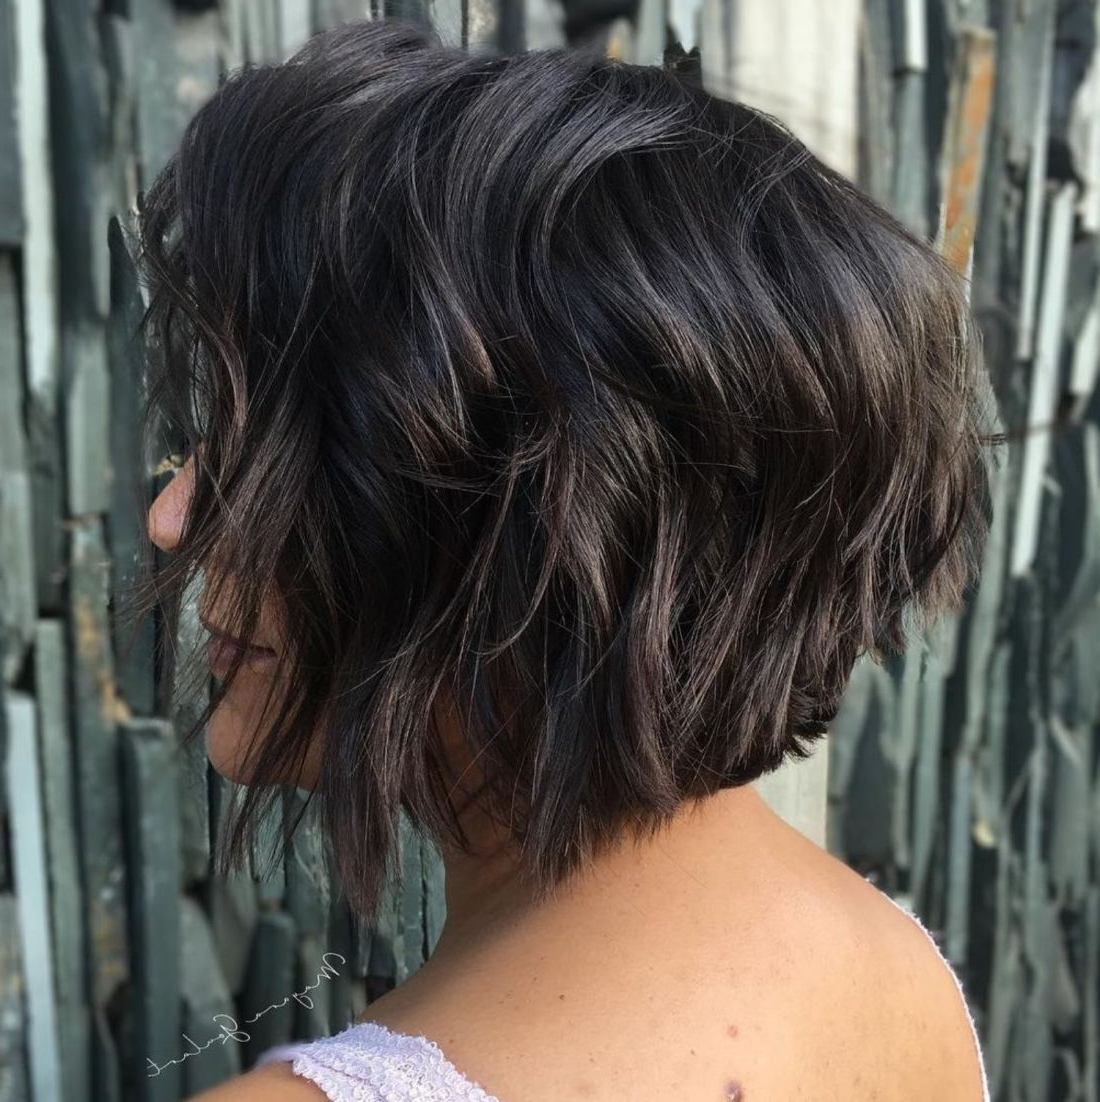 60 Short Shag Hairstyles That You Simply Can't Miss | Wavy Pertaining To Short Sliced Inverted Bob Hairstyles (View 9 of 20)